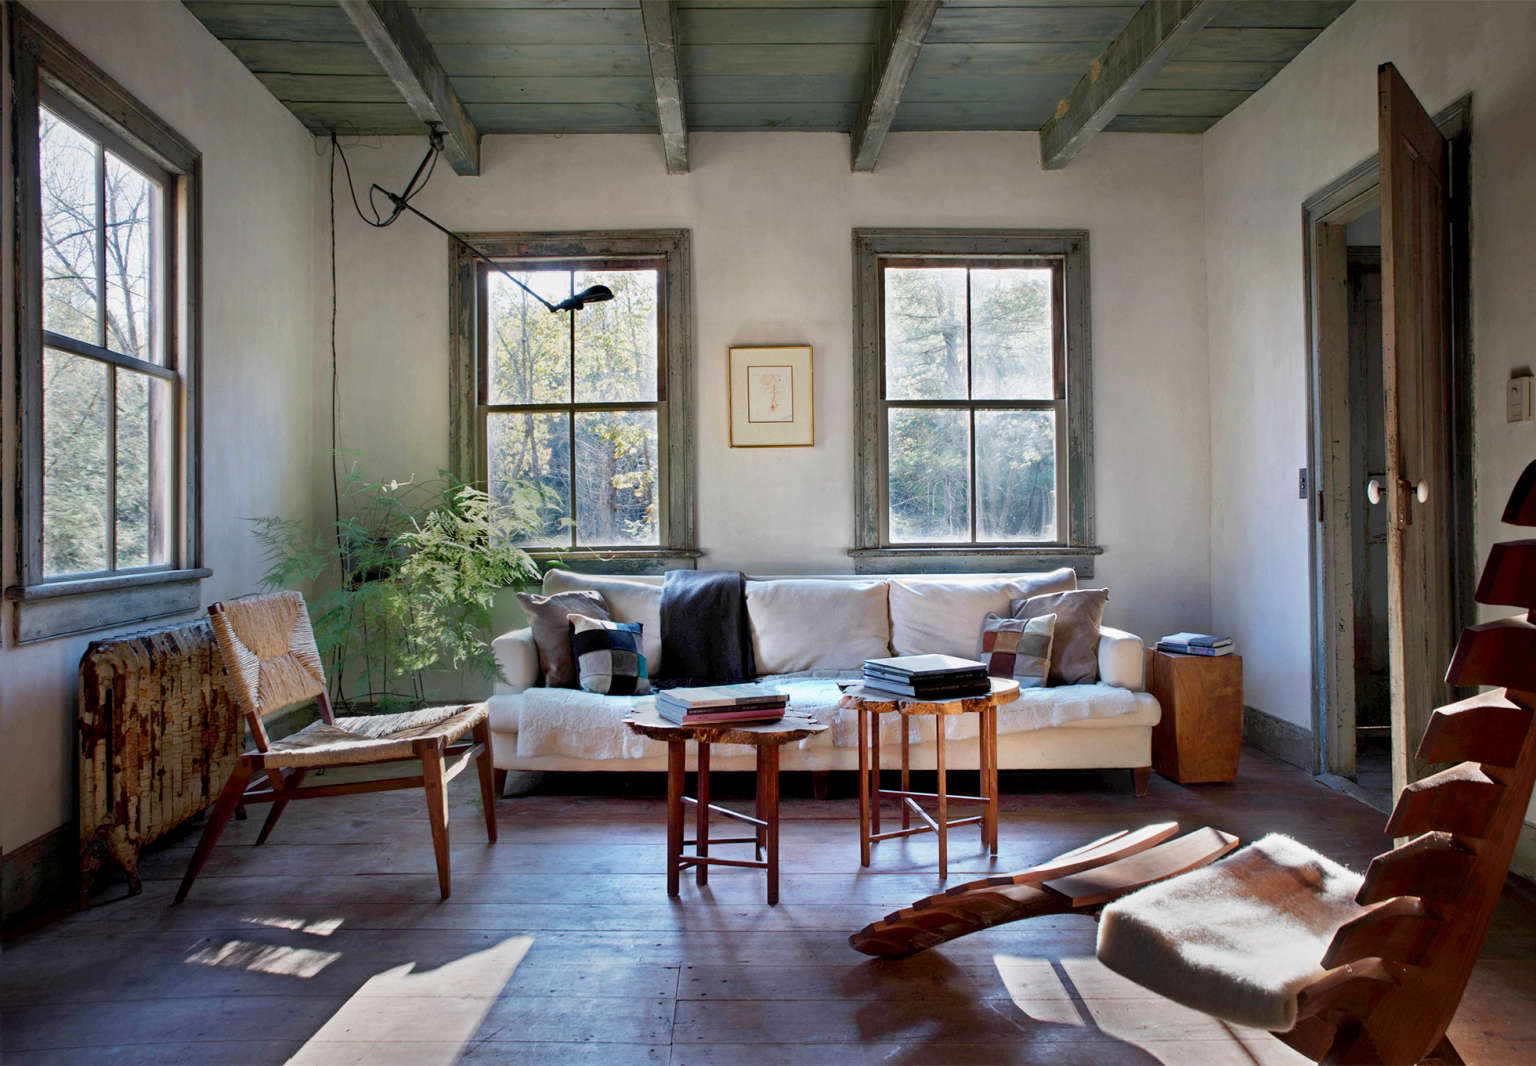 Attractive Rustic Farmhouse Hudson Valley Howell Living Room 1 1536x1066